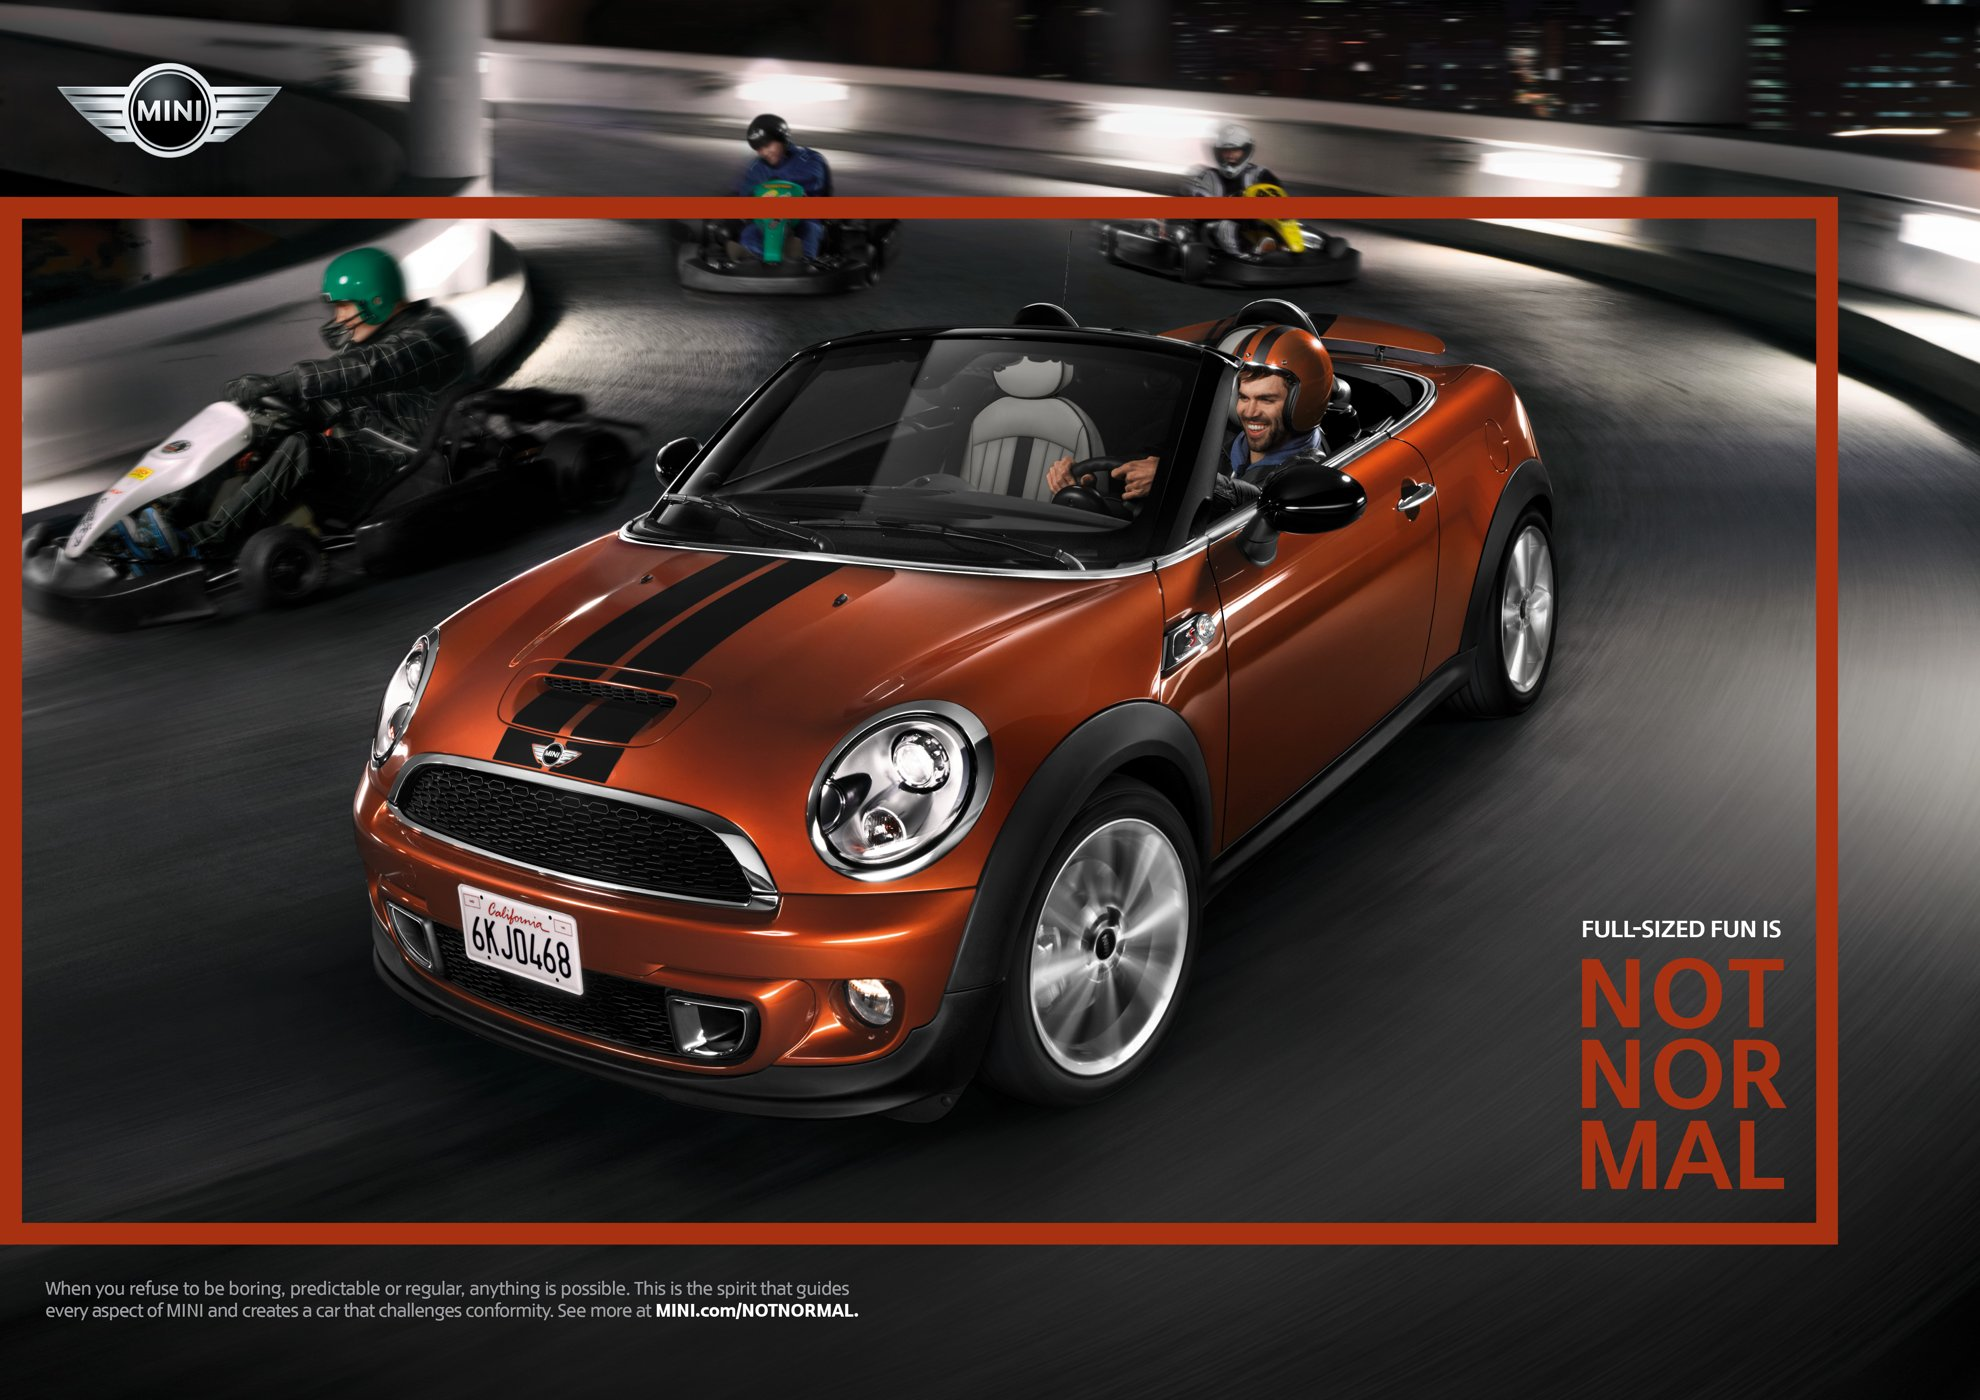 Mini Advertising Campaign